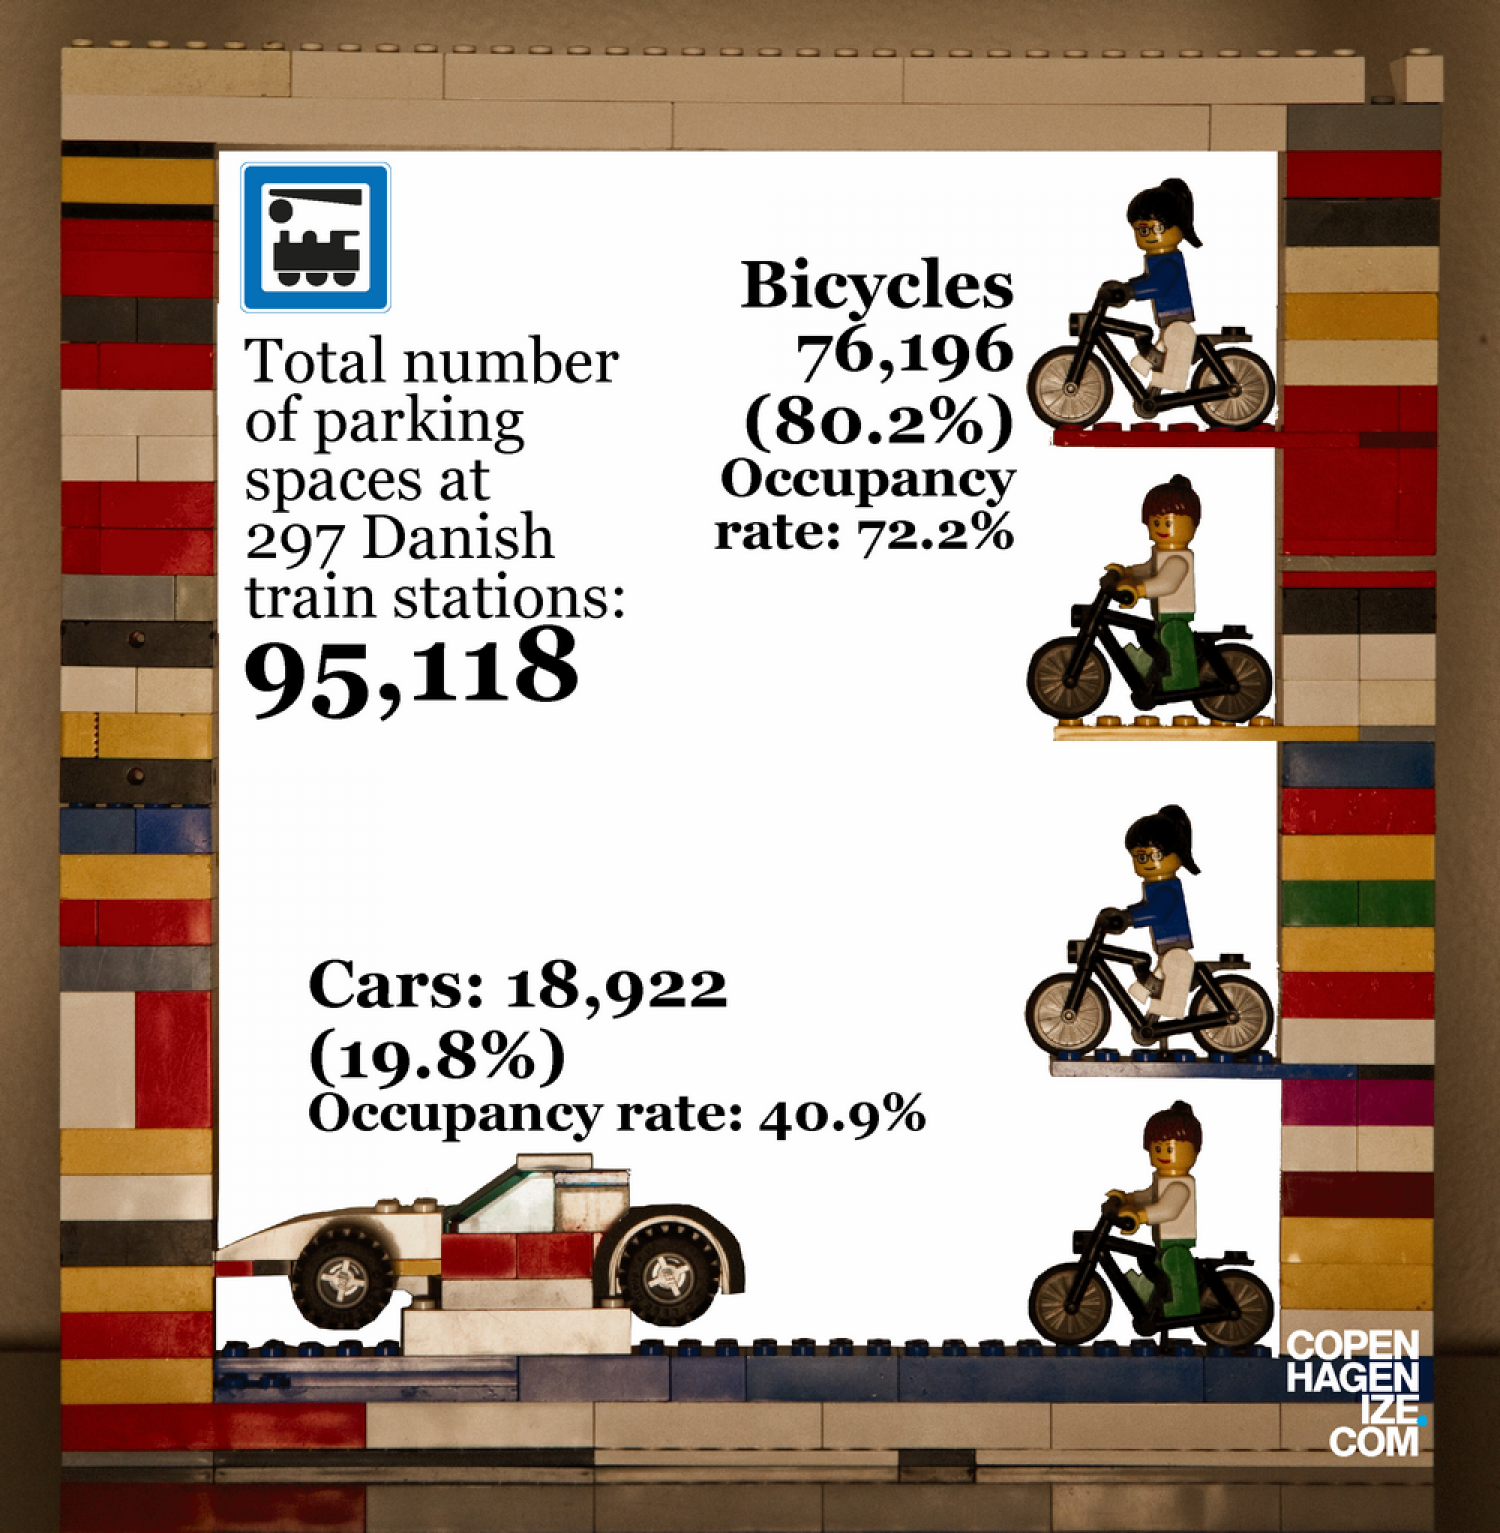 Bicycle Parking at Train Stations in Denmark Infographic